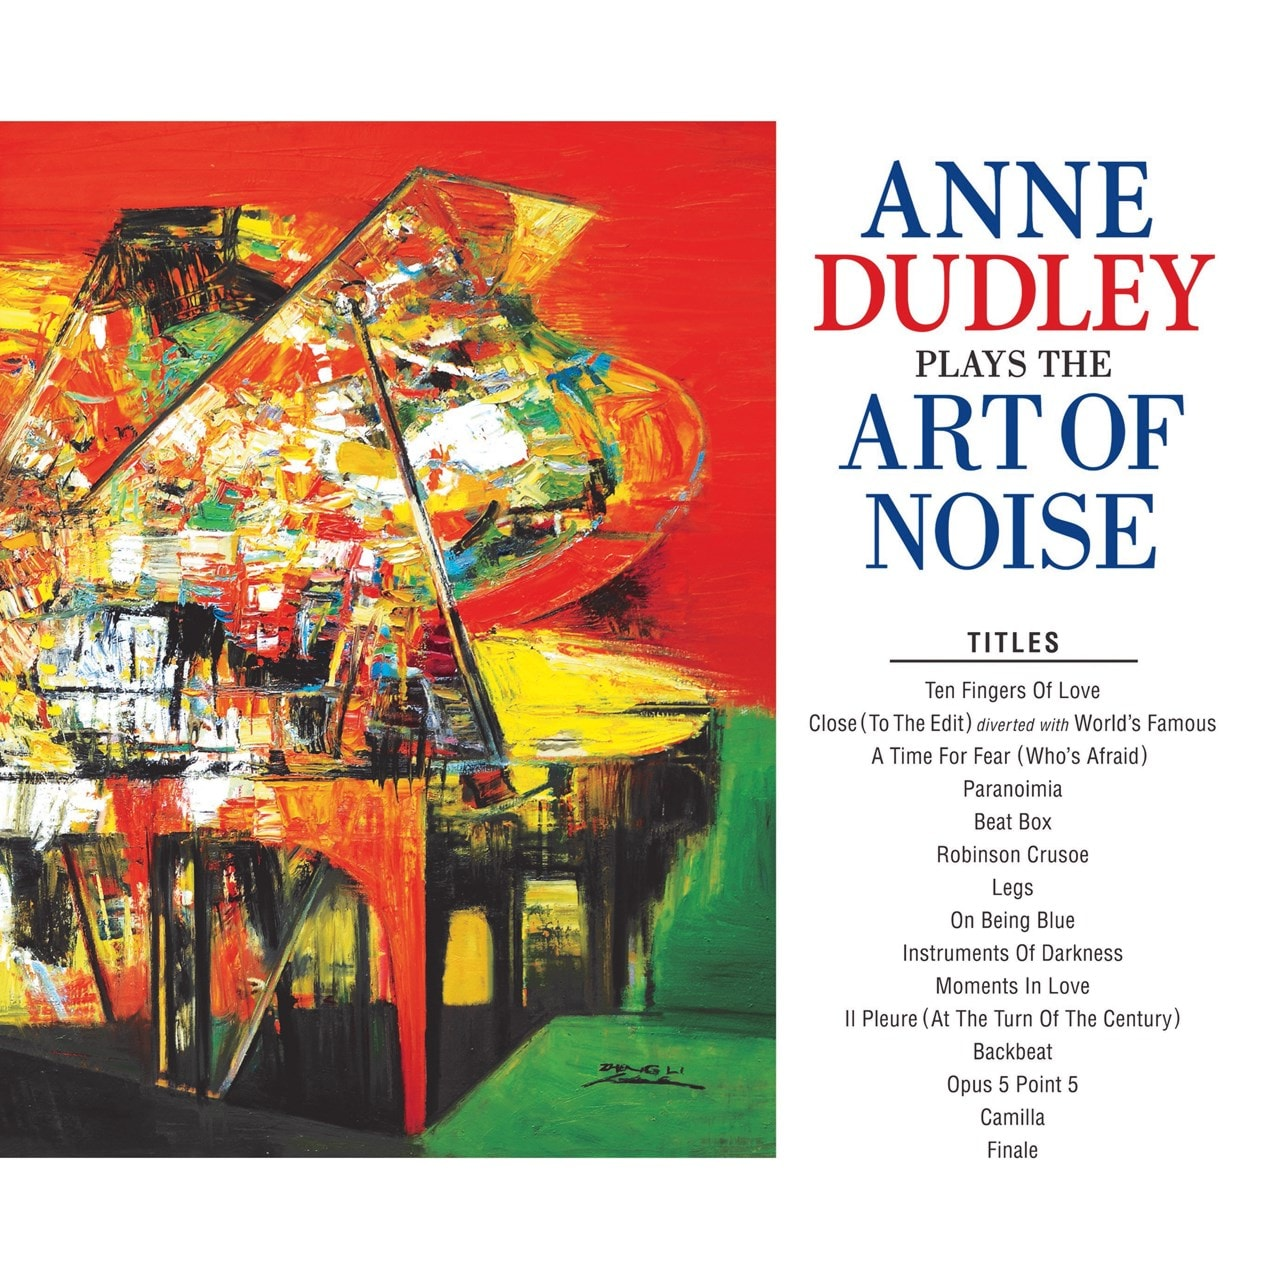 Anne Dudley Plays the Art of Noise - 1